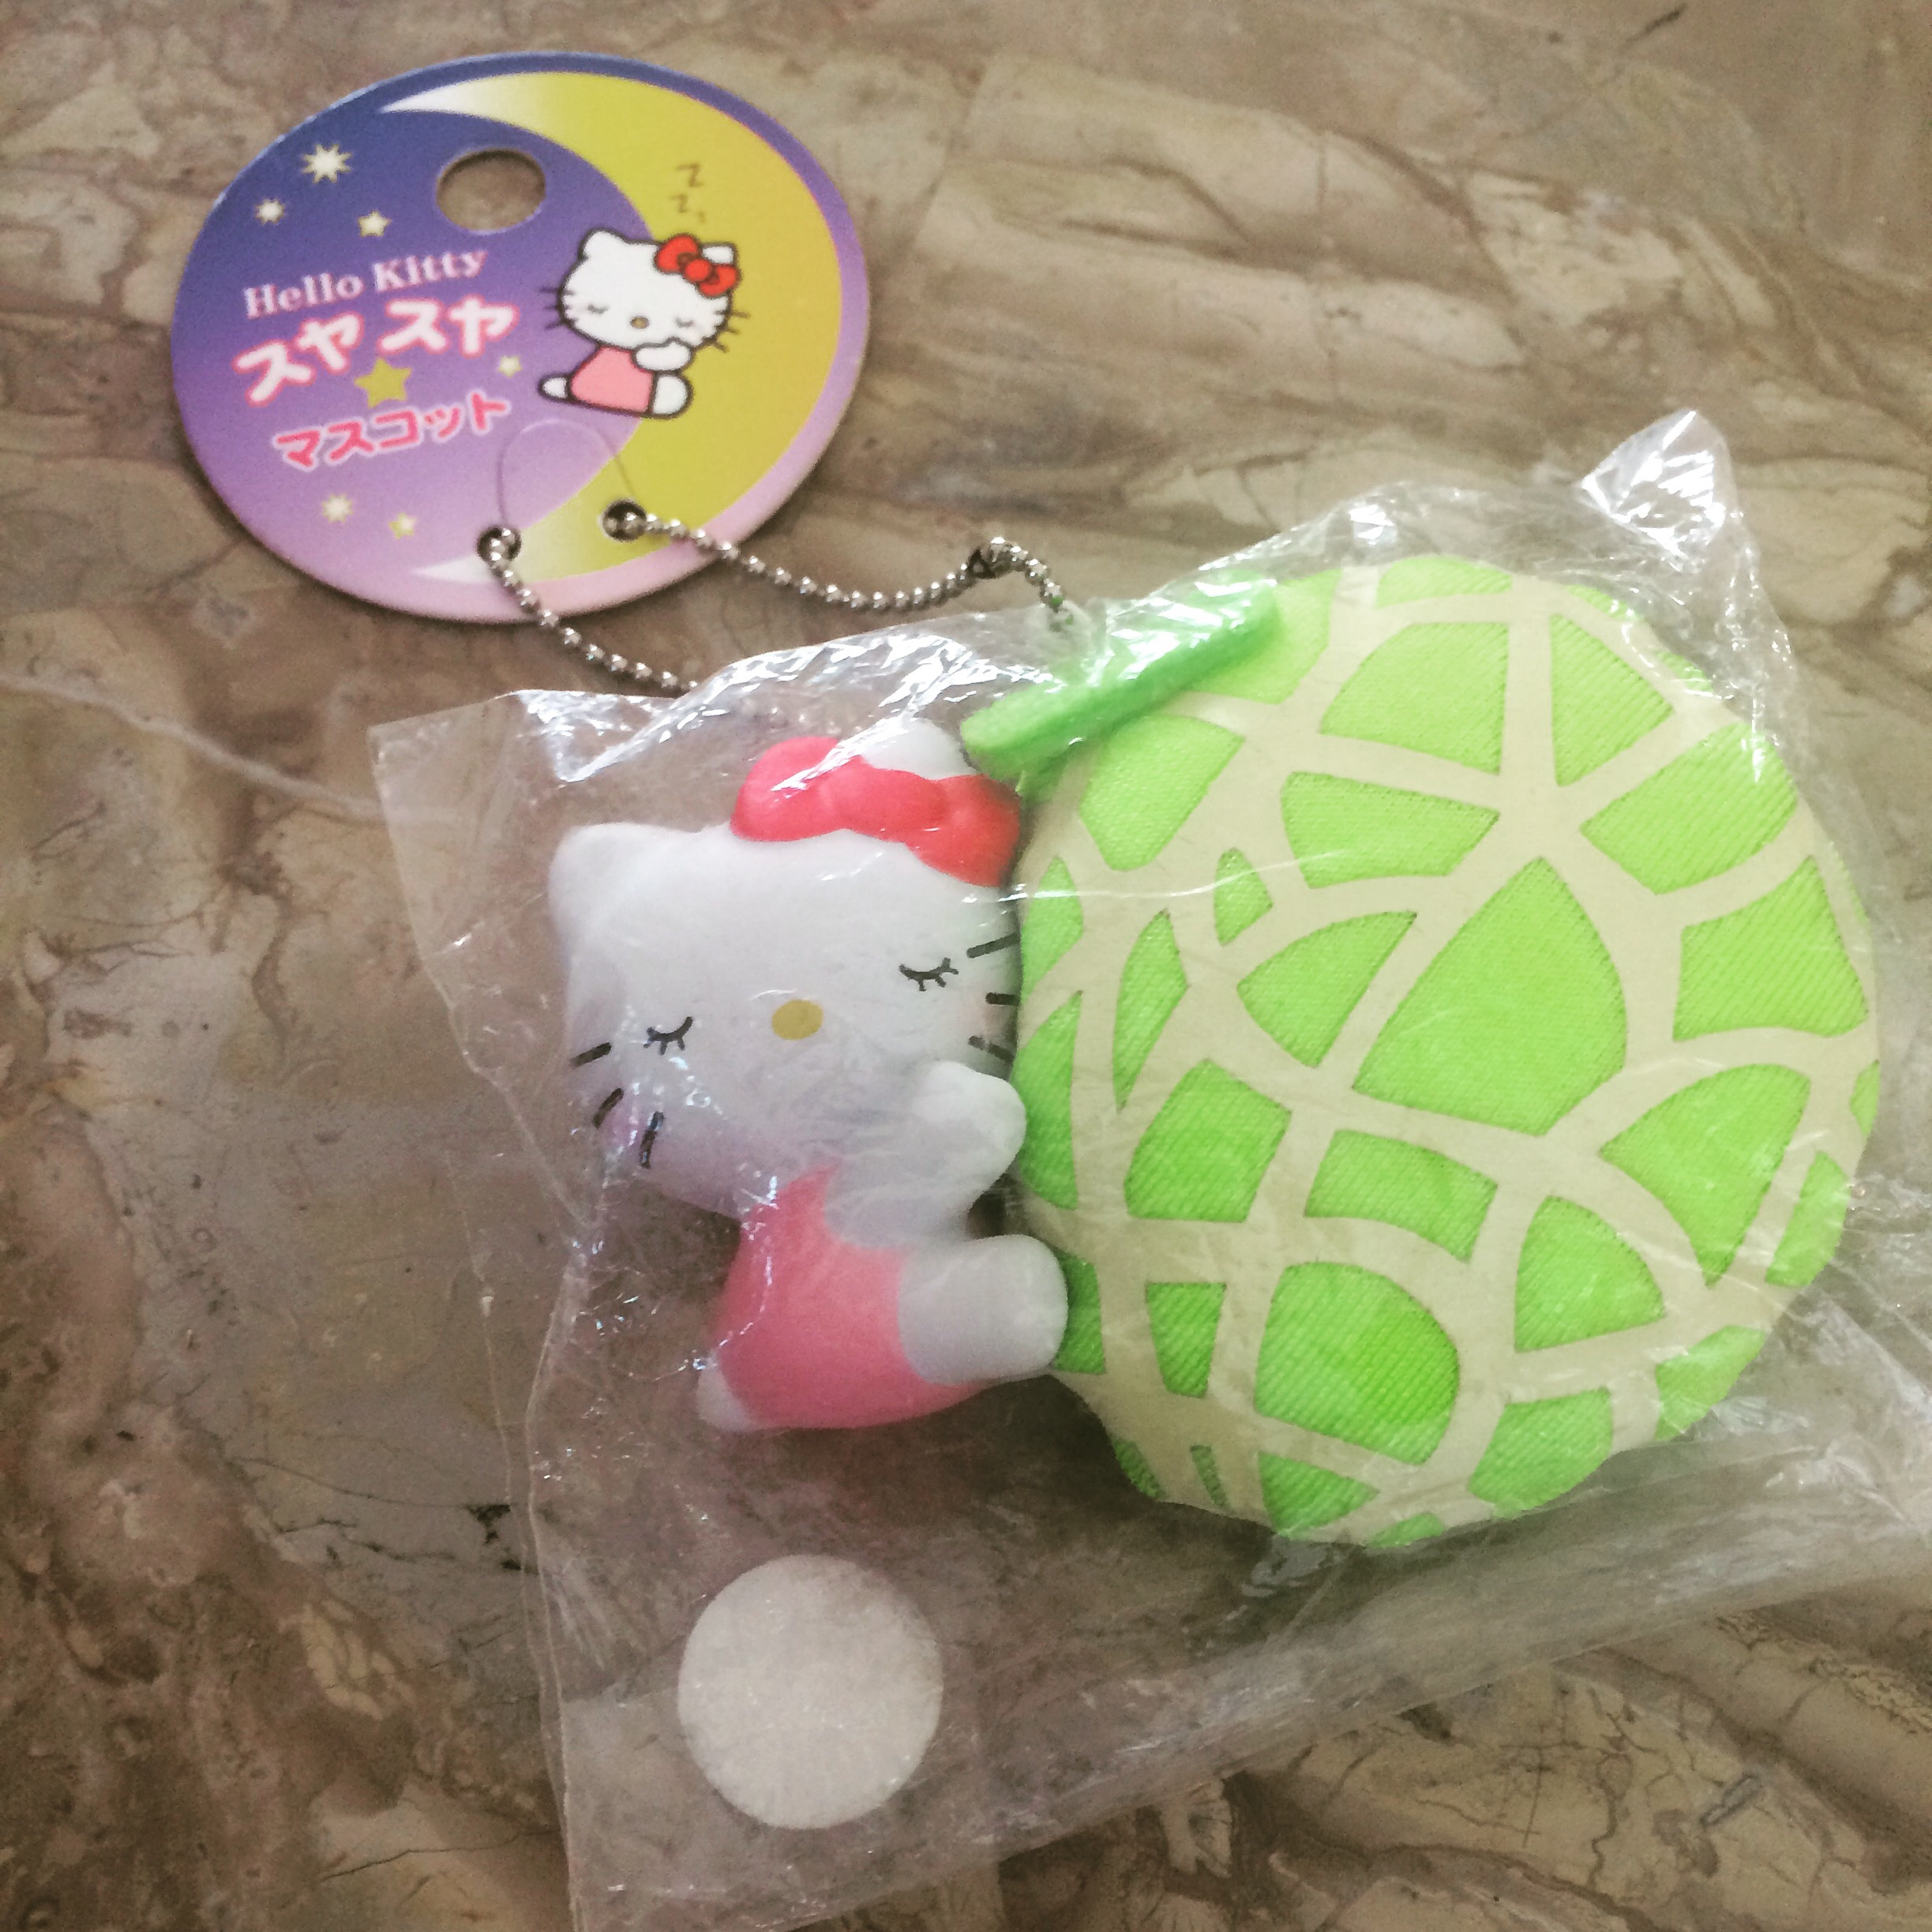 Huge Rare Squishy Collection : Rare hello kitty holding a melon plush squishy ? SuzyCupcake ? Online Store Powered by Storenvy